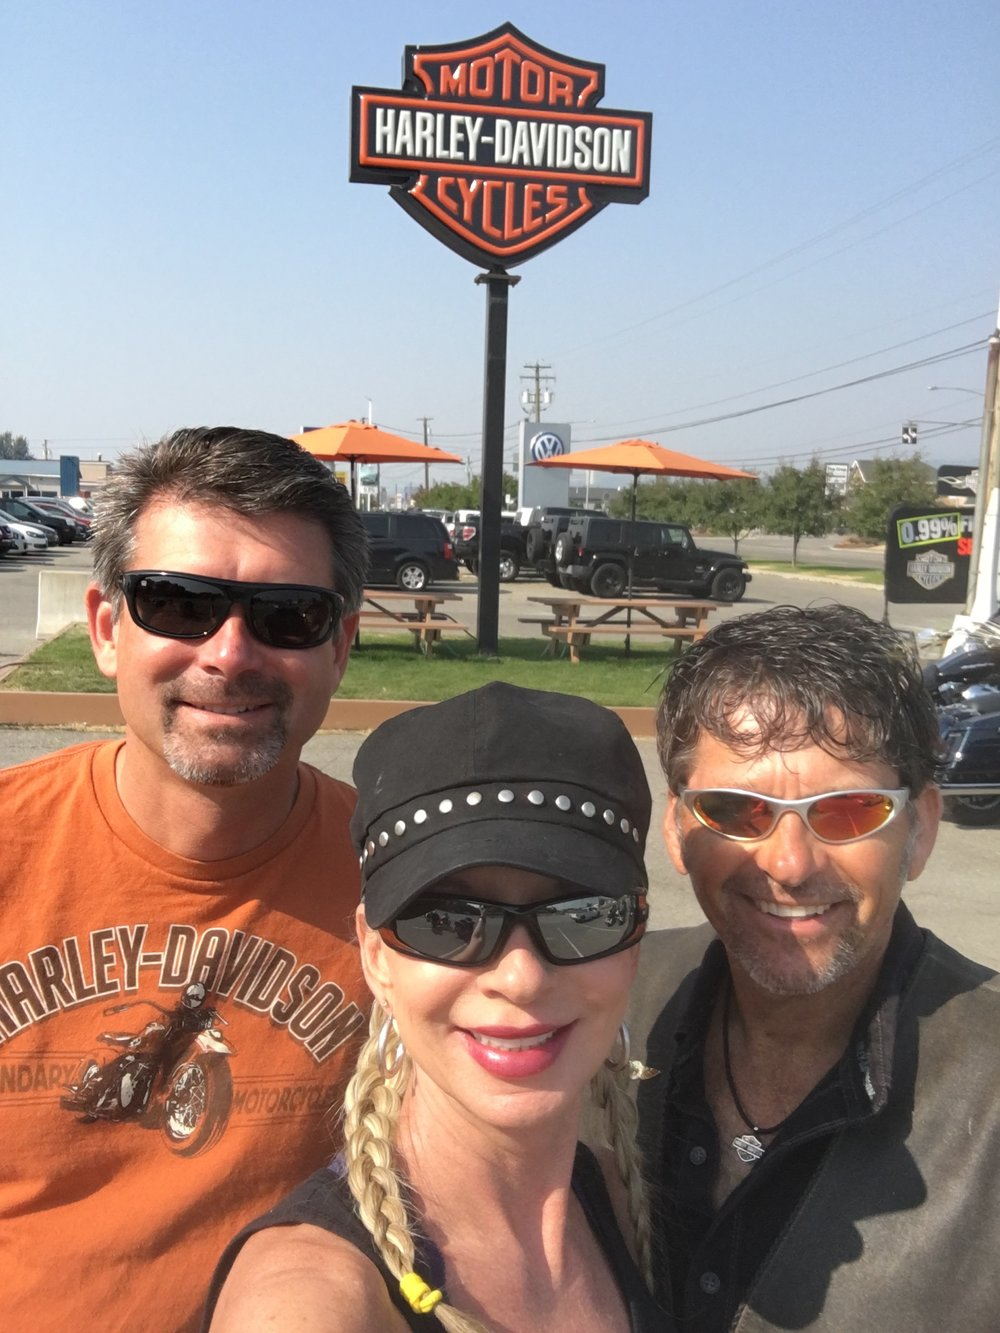 All trips include going to every Harley store available.